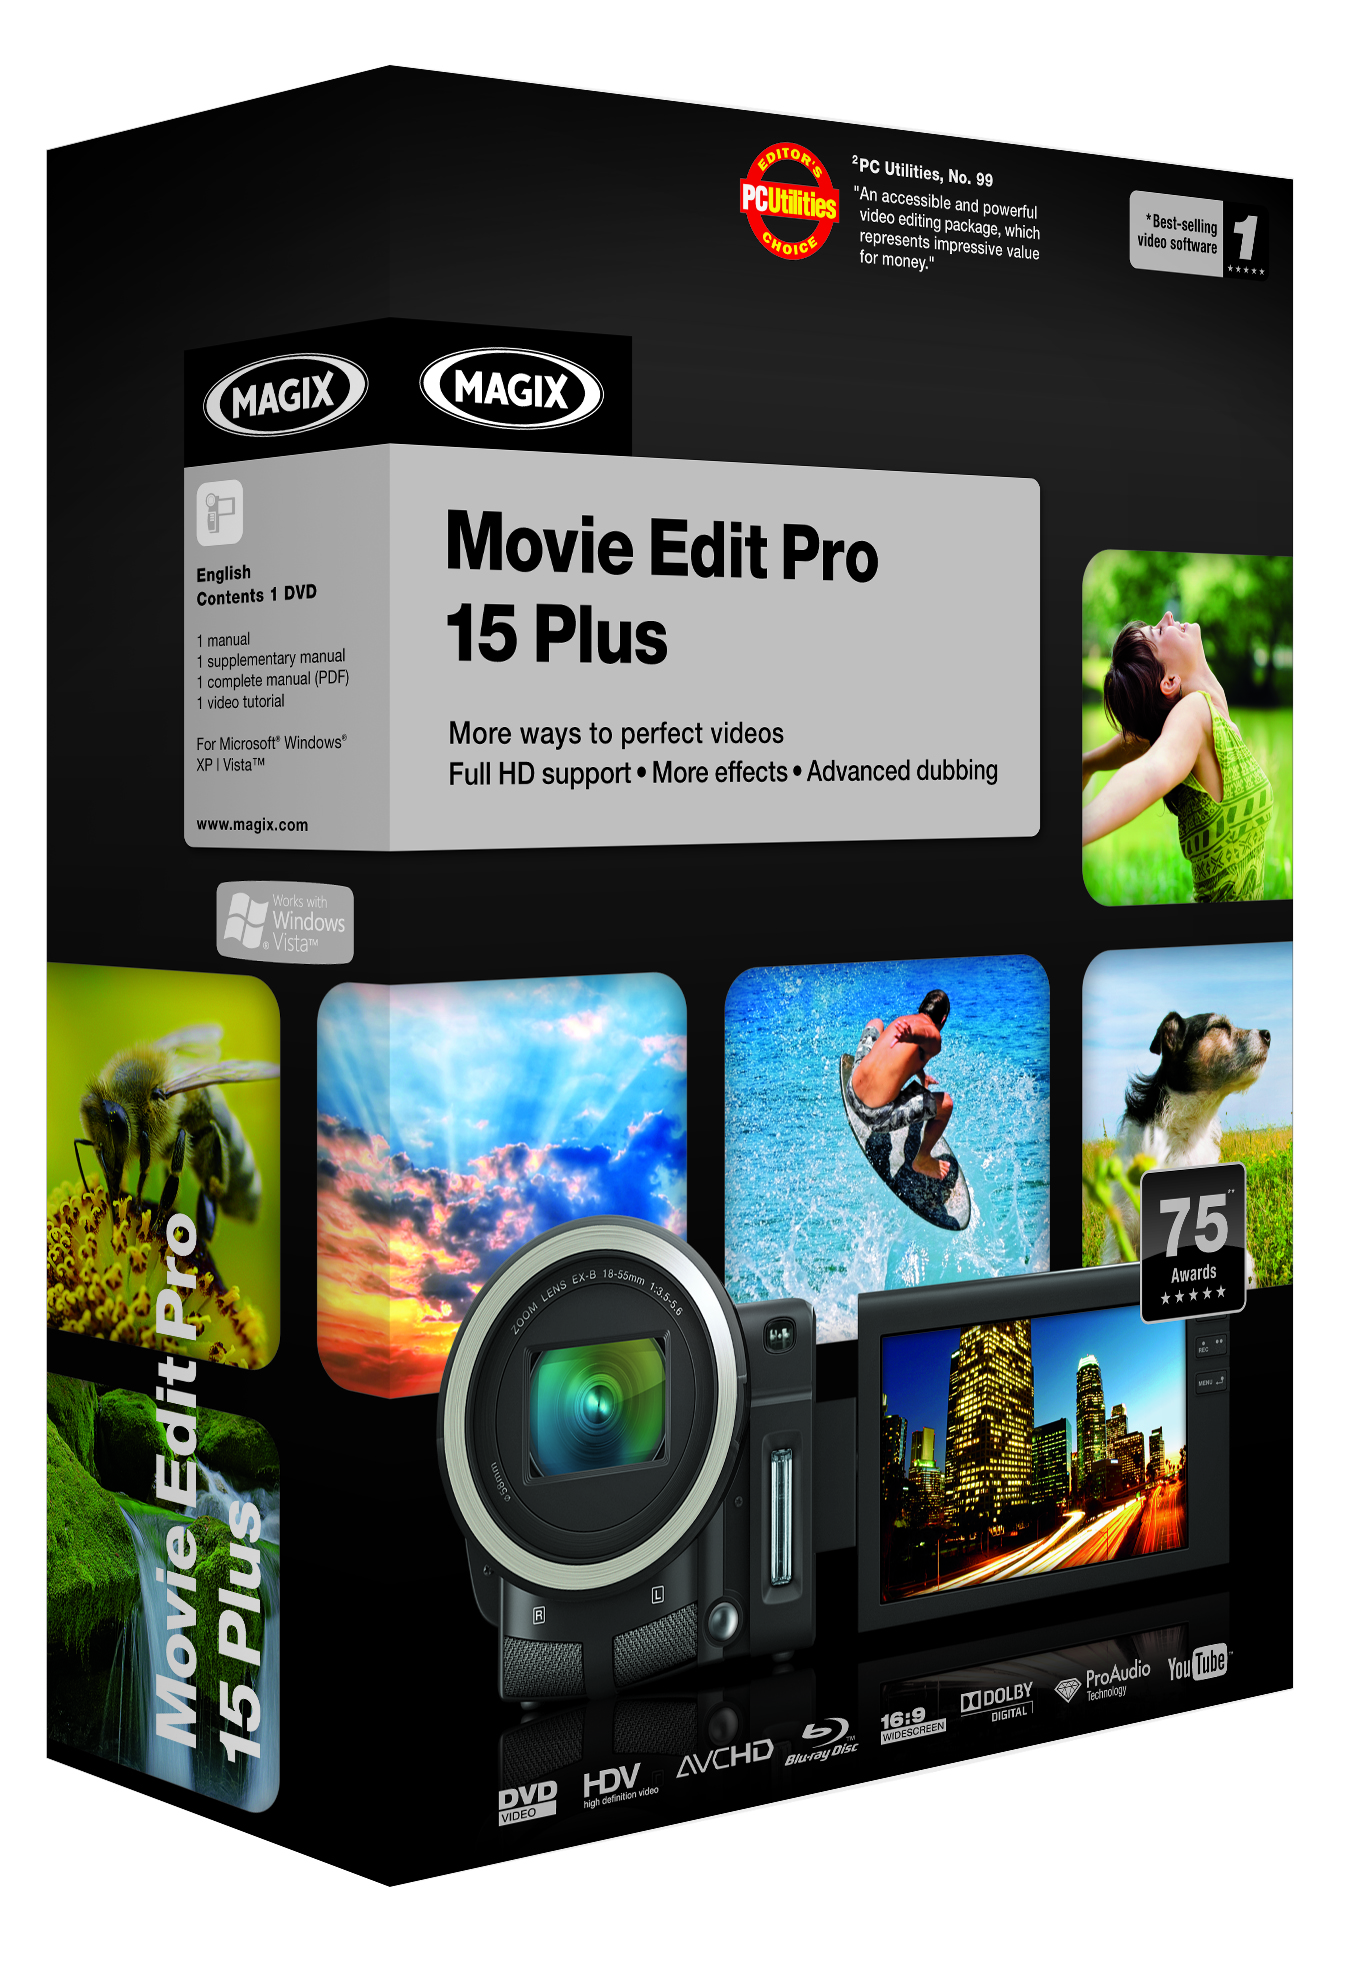 Magix releases movie edit pro 15 video editing software for Magix movie edit pro templates